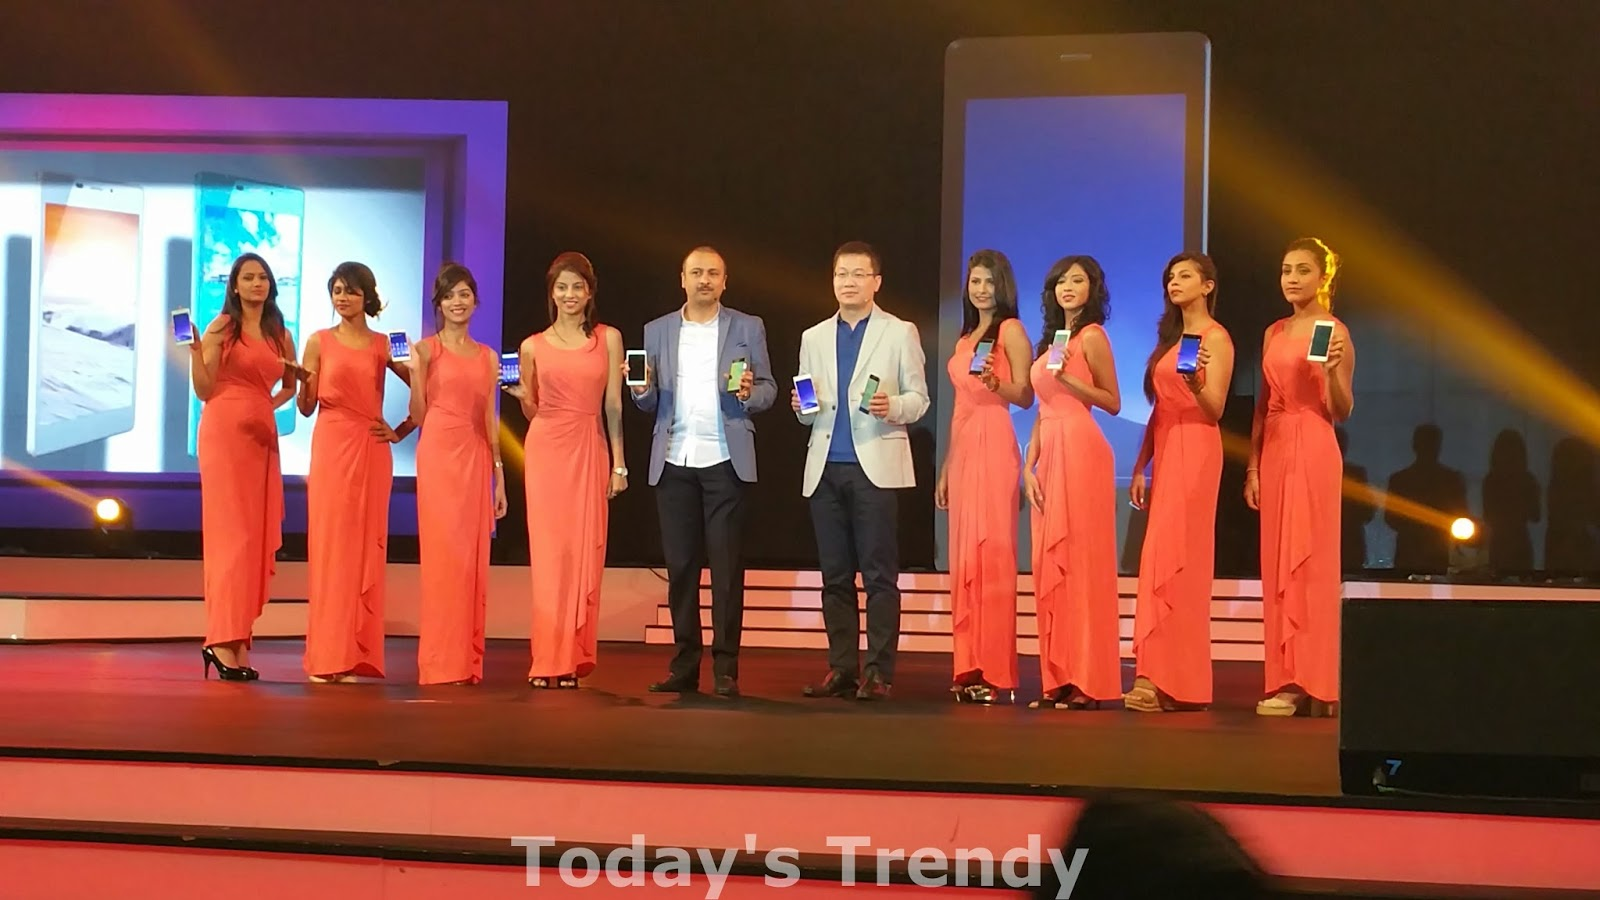 Arvind and William launching the Gionee Elife S7 in Hyderabad, India